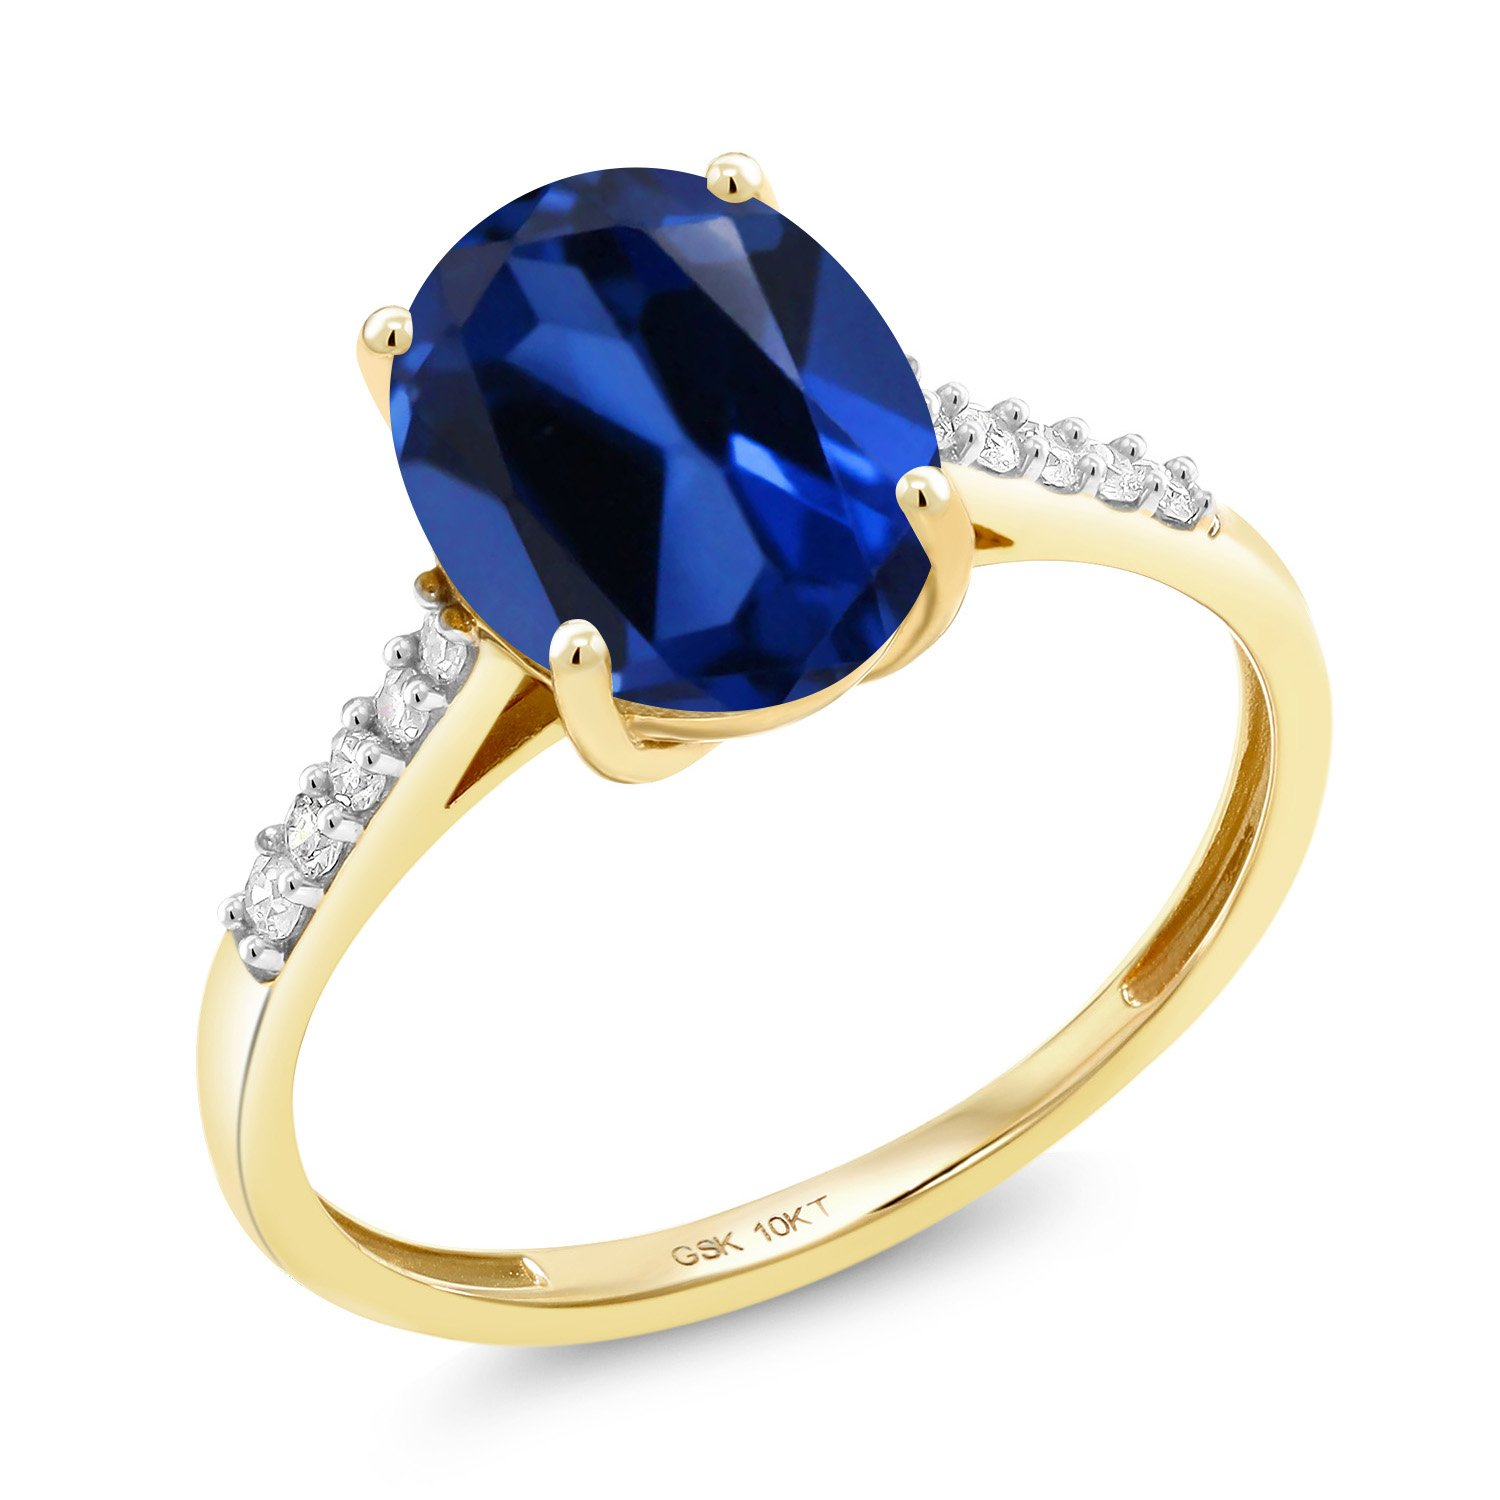 Gem Stone King 10K Yellow Gold 3.42 Ct Oval Blue Simulated Sapphire White Diamond Ring (Size 8) by Gem Stone King